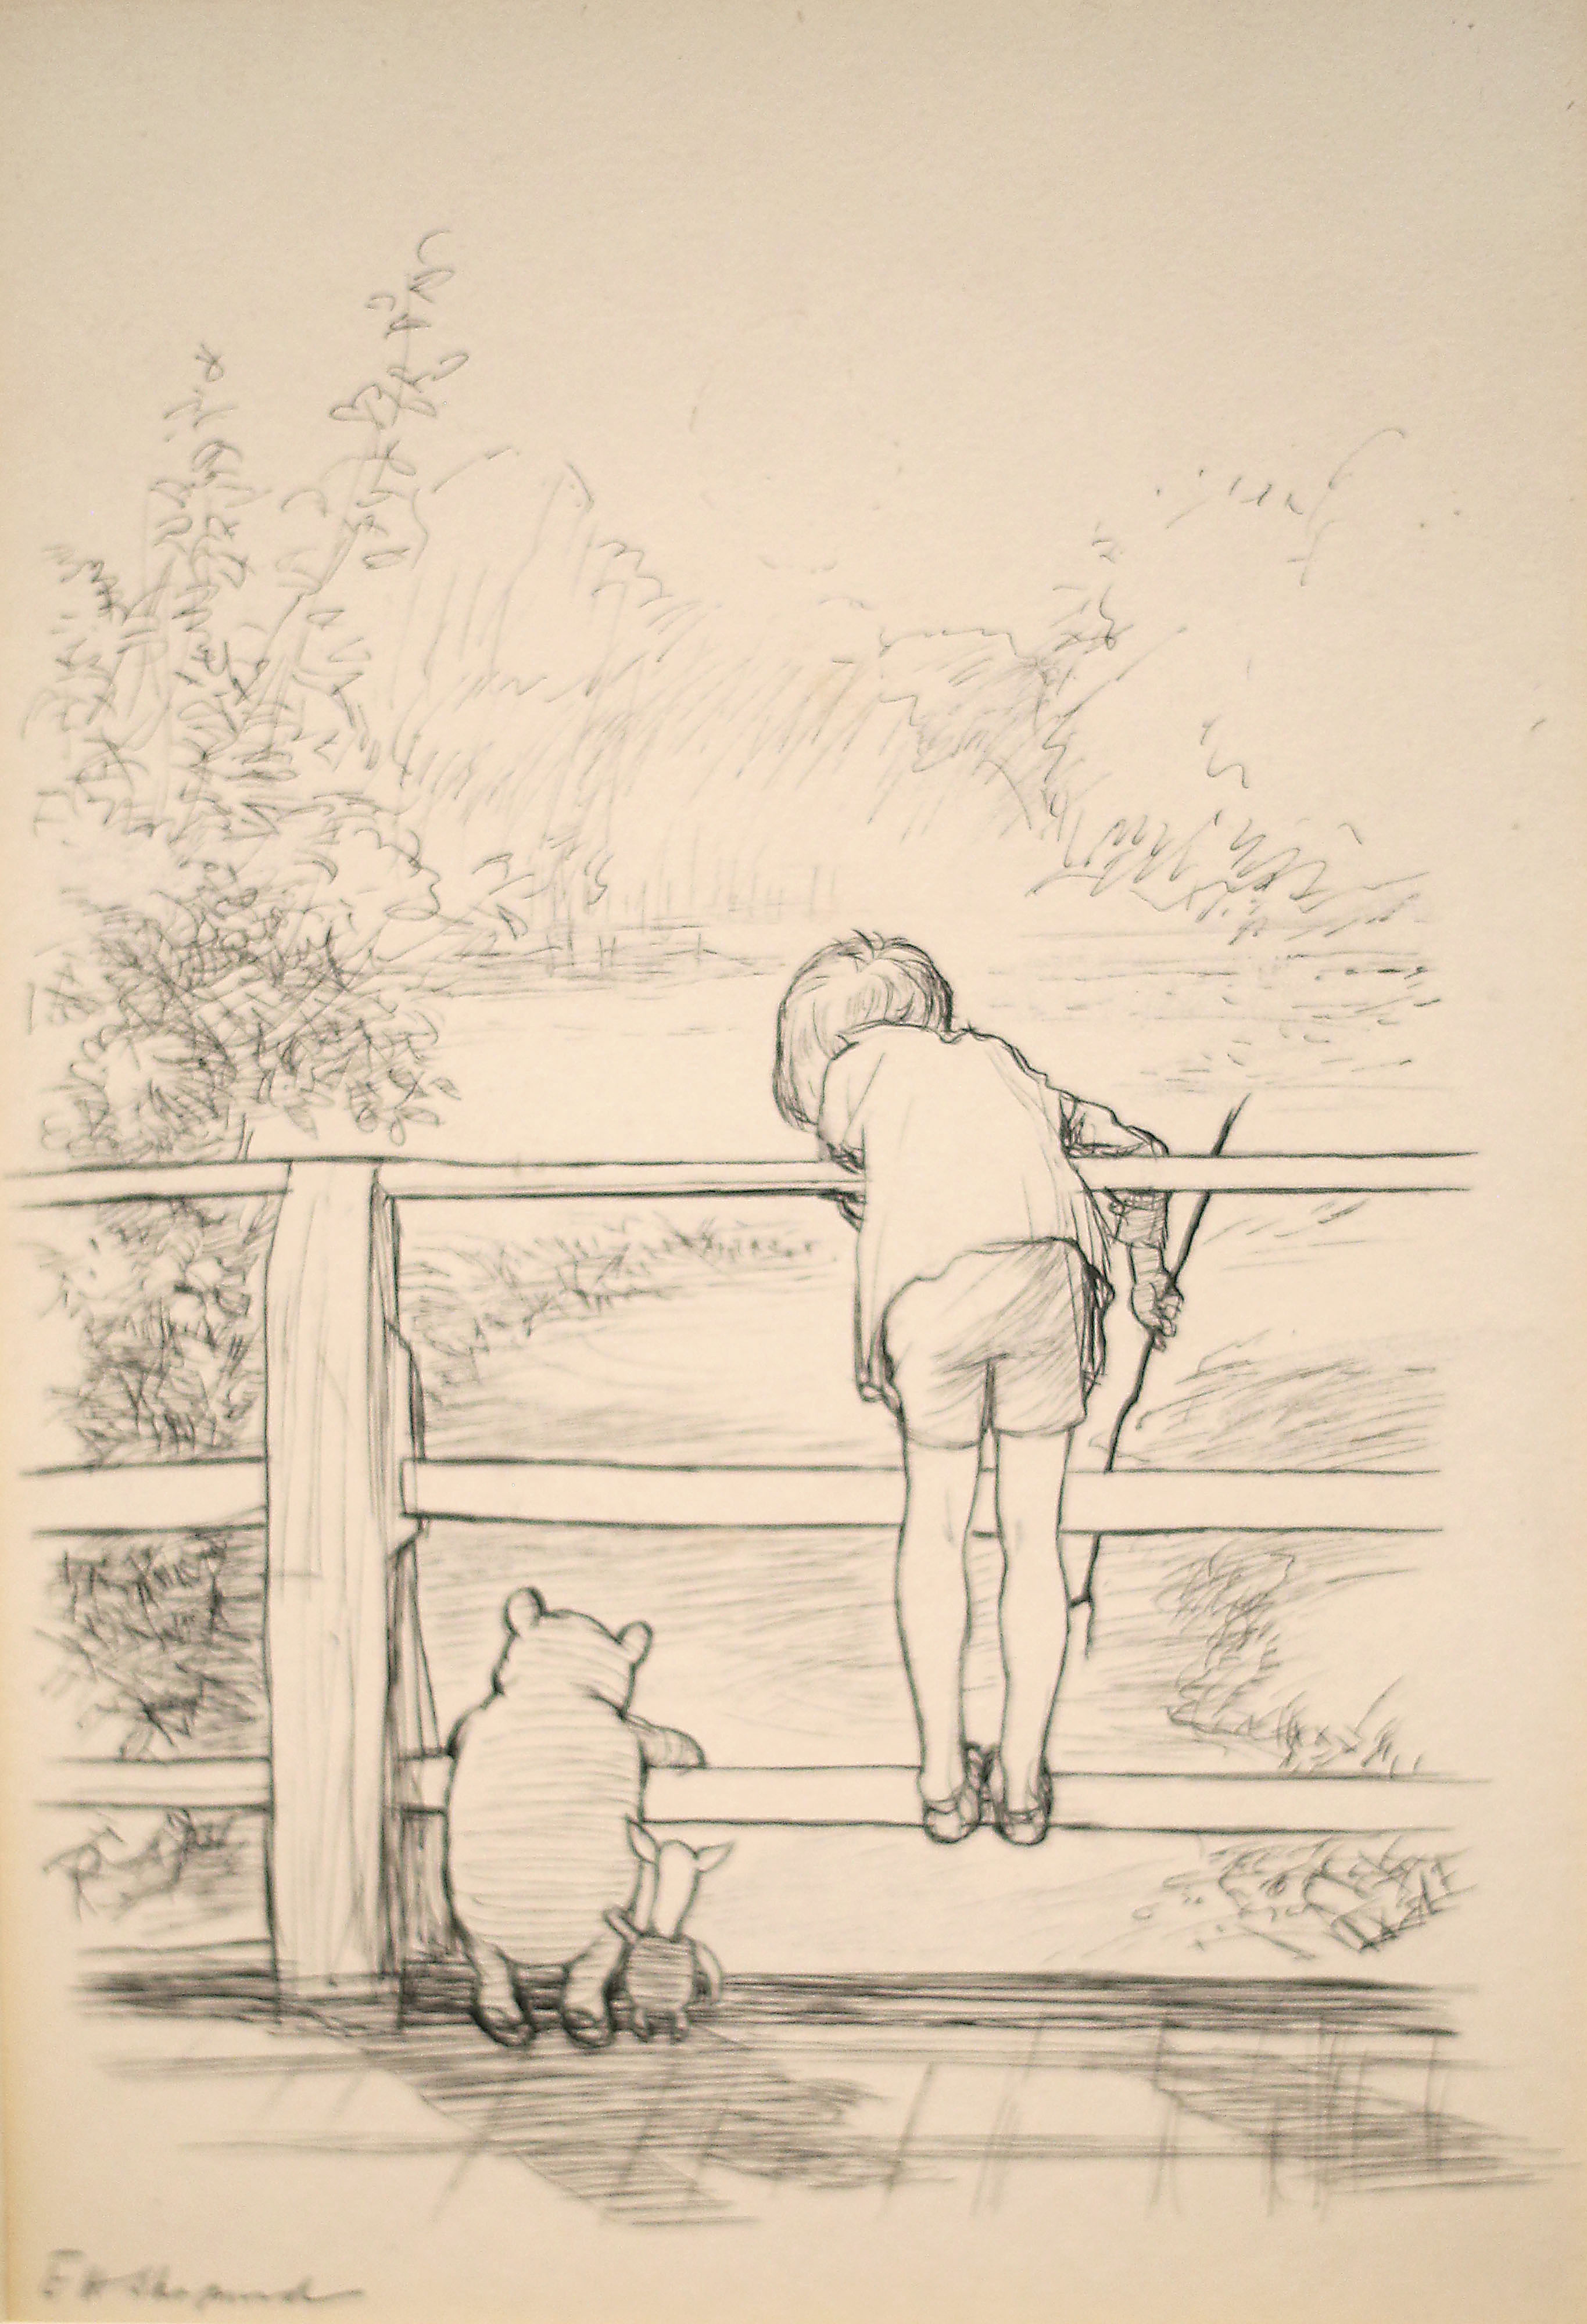 Pooh and Piglet, Winnie The Pooh